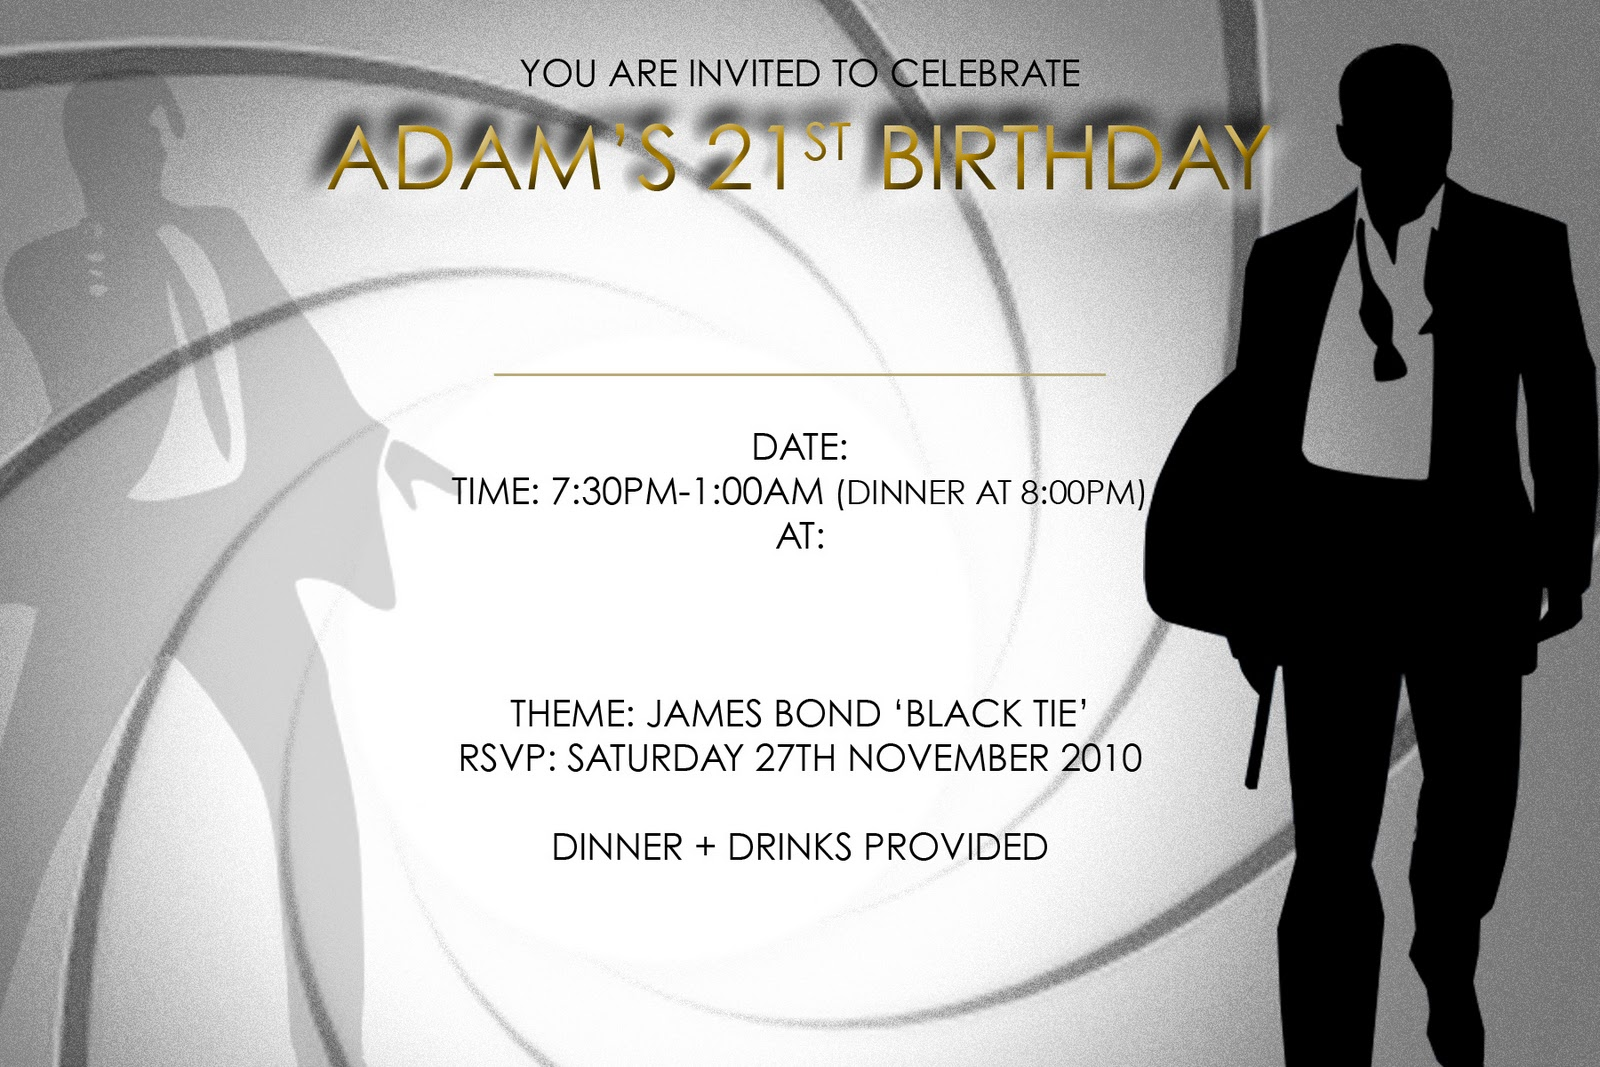 ... birthday invitations templates 950 x 950 144 kb jpeg vintage birthday